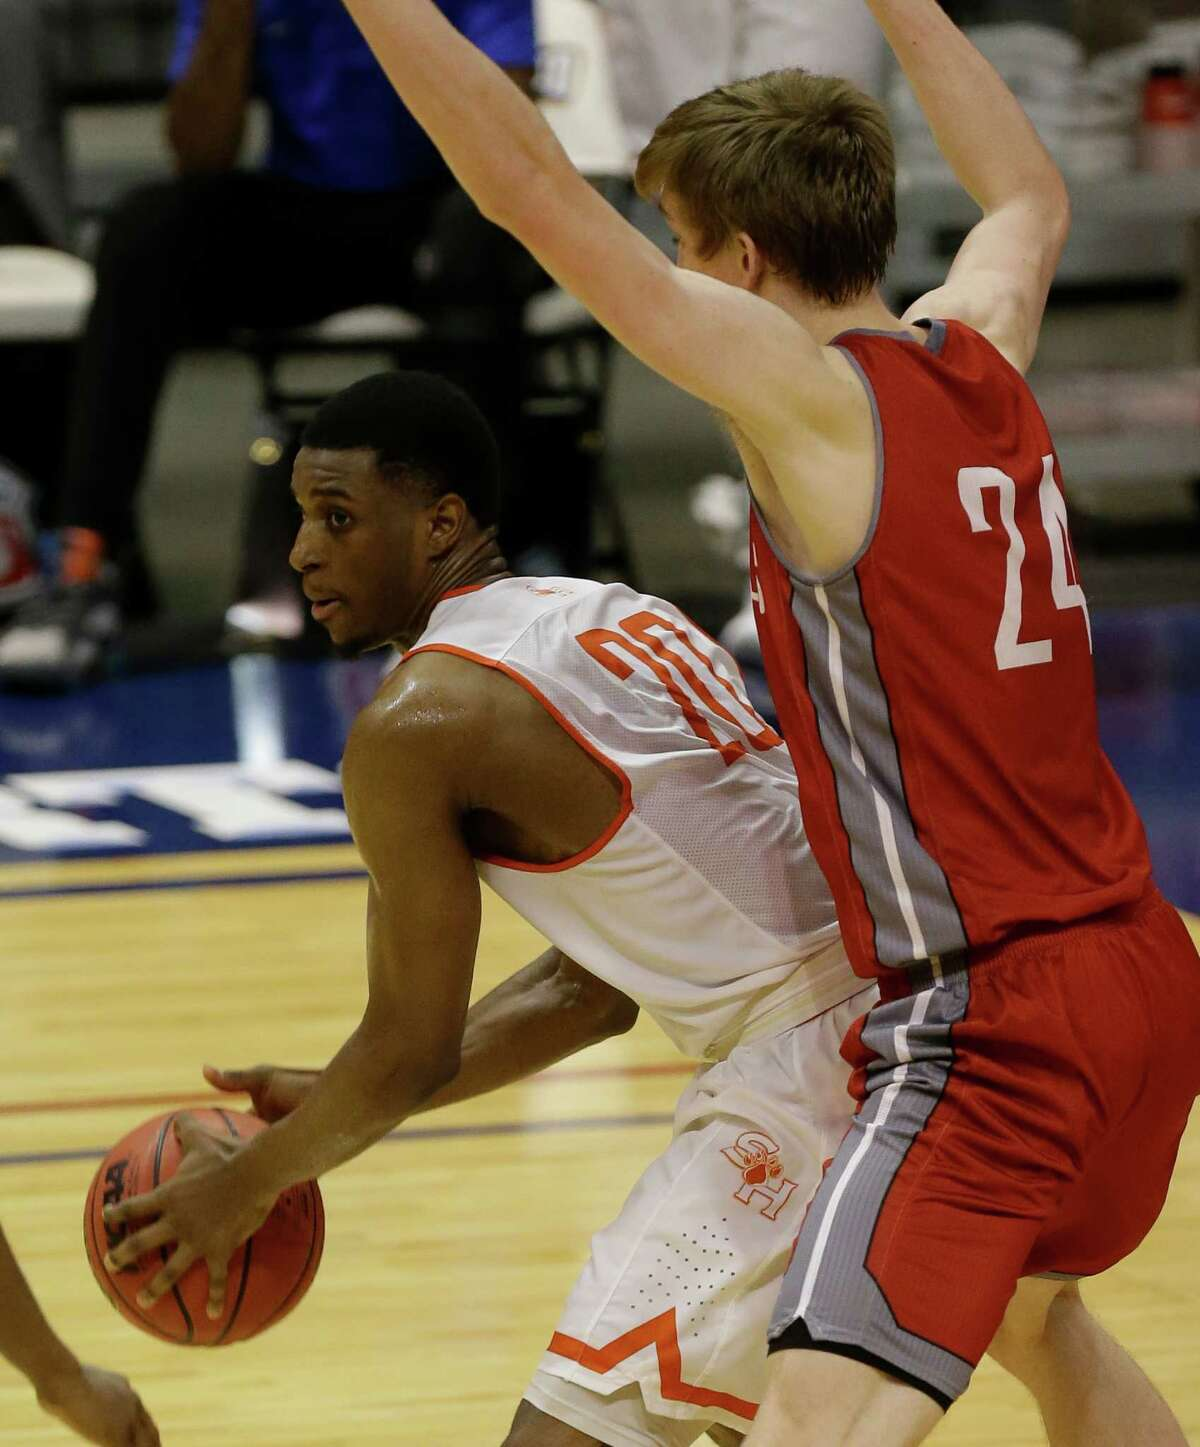 Sam Houston Jamal Williams is guarded by Nicholls Liam Thomas during the second half of game at the Southland conference tournament Thursday, March 10, 2016, in Katy.